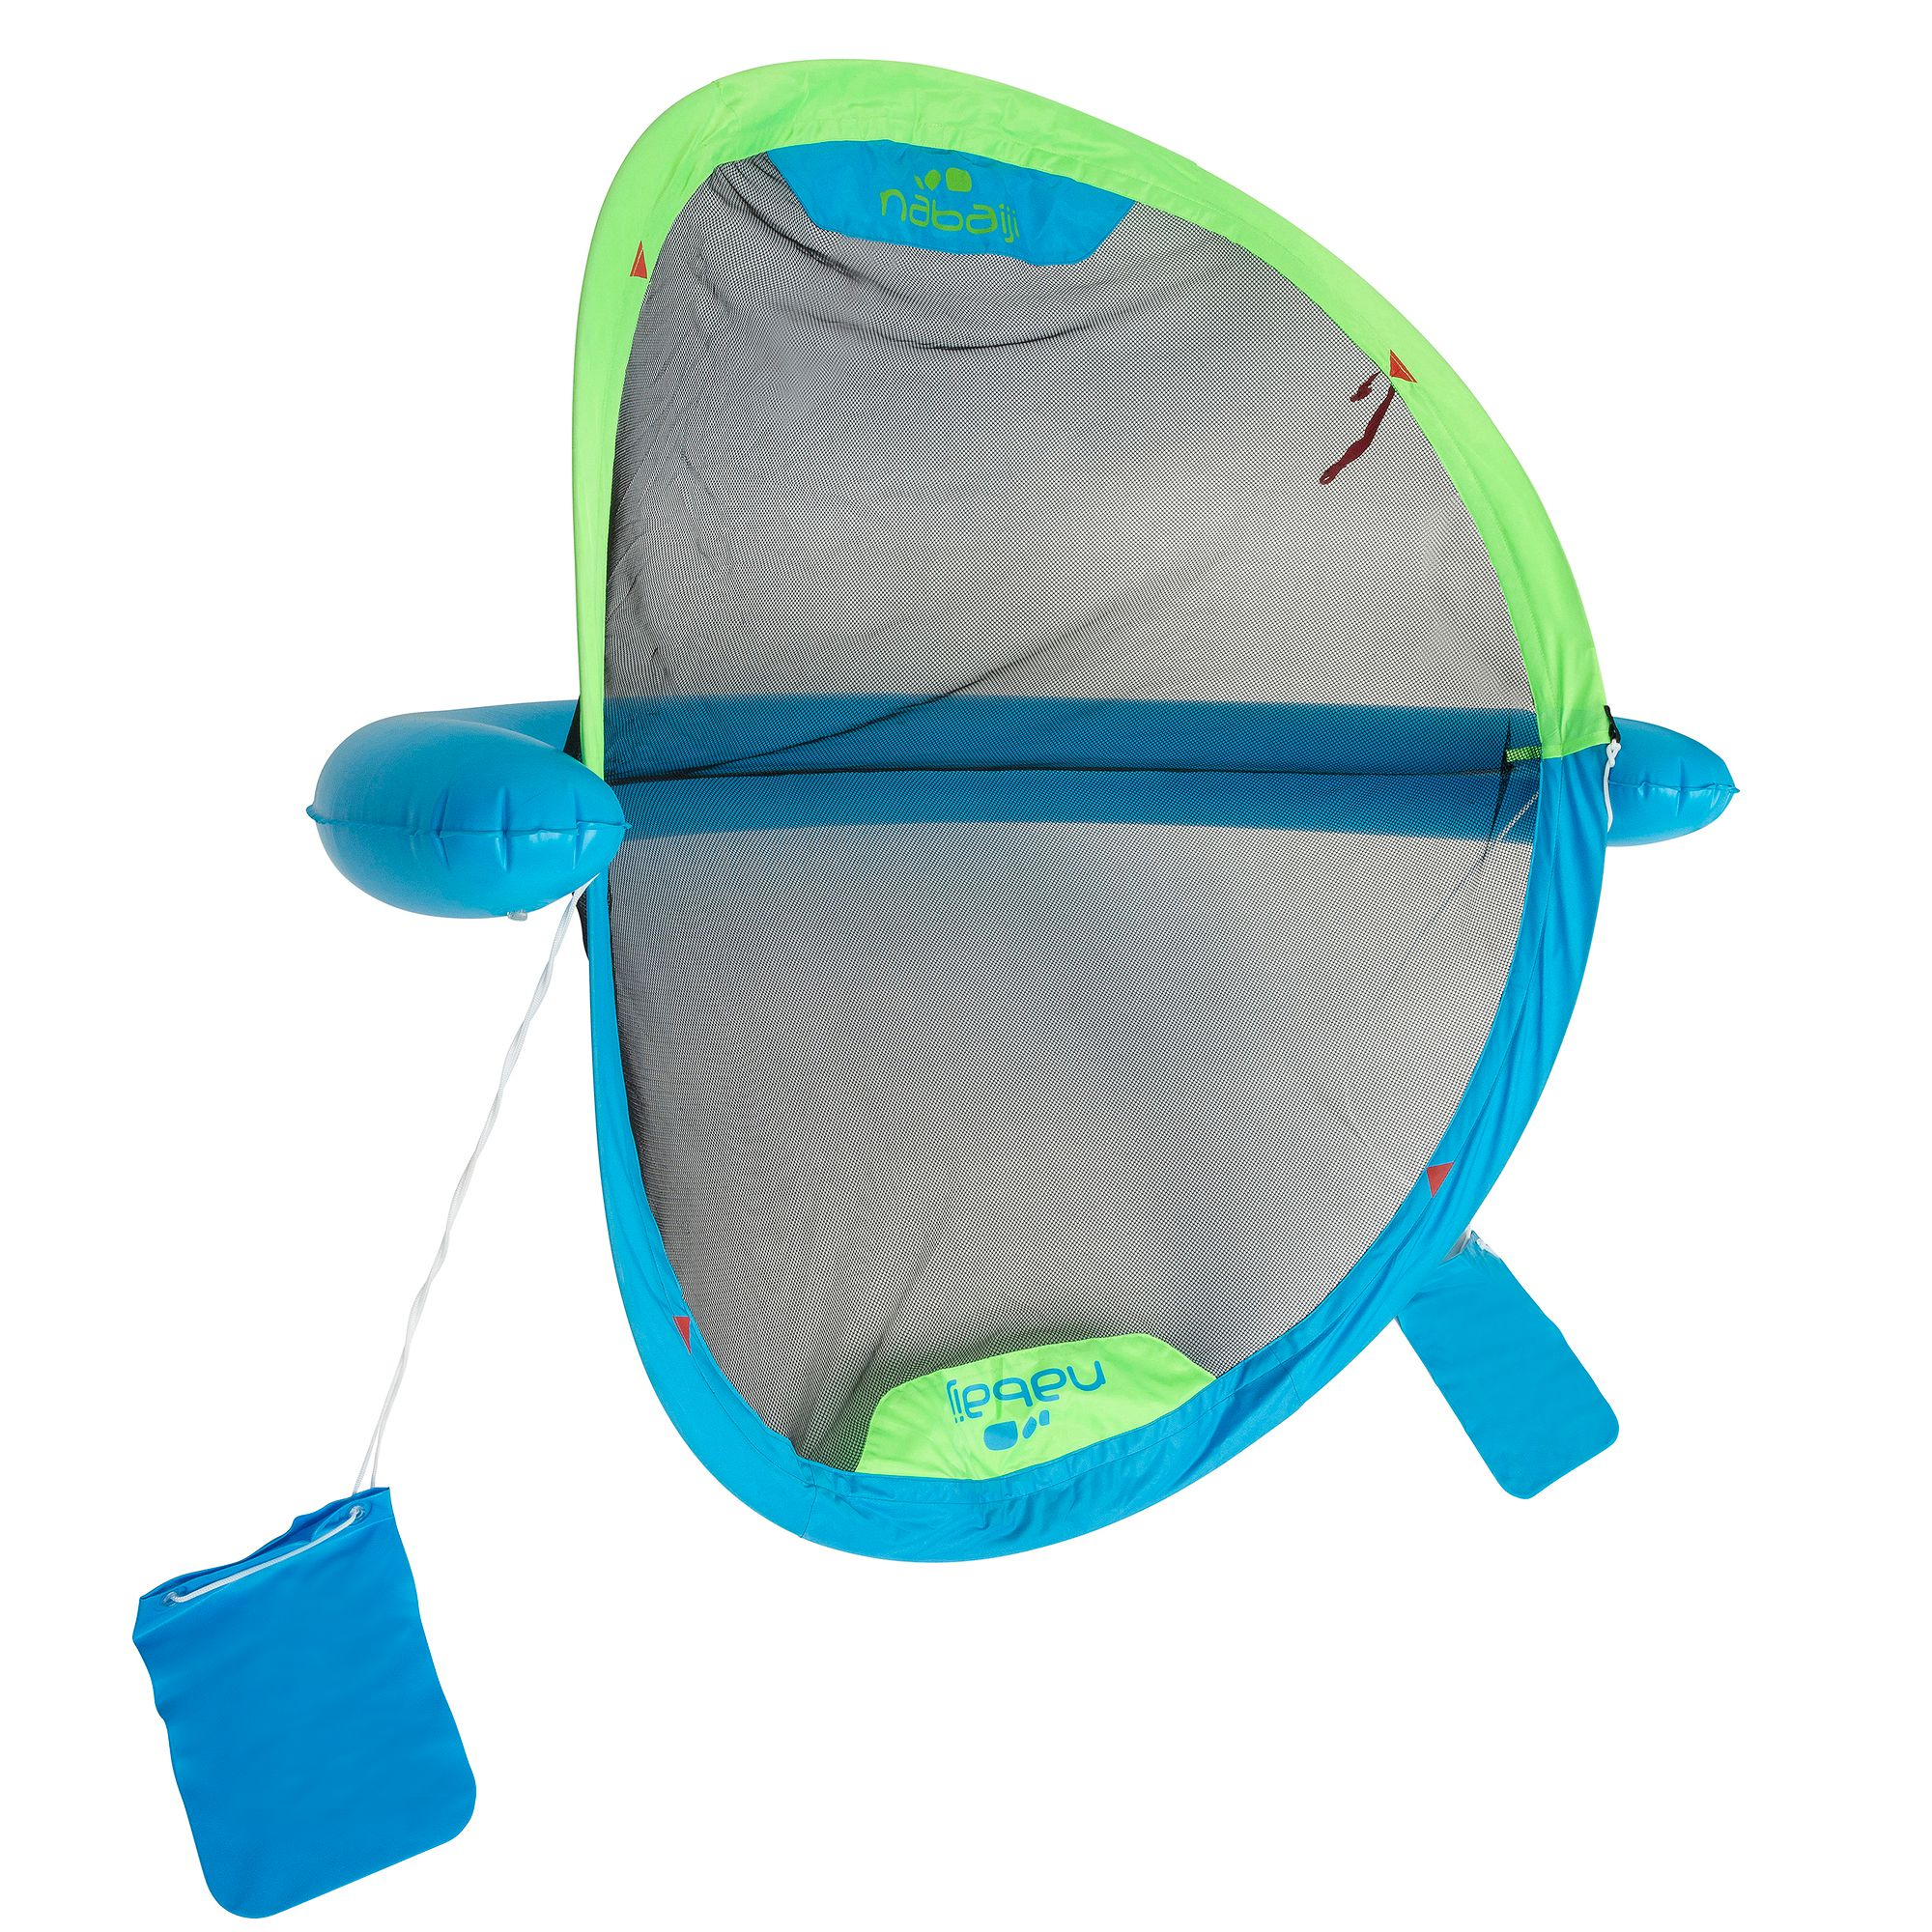 Porte Parapluie But But Gonflable Waterpolo Piscine Polo Up Blue Vert